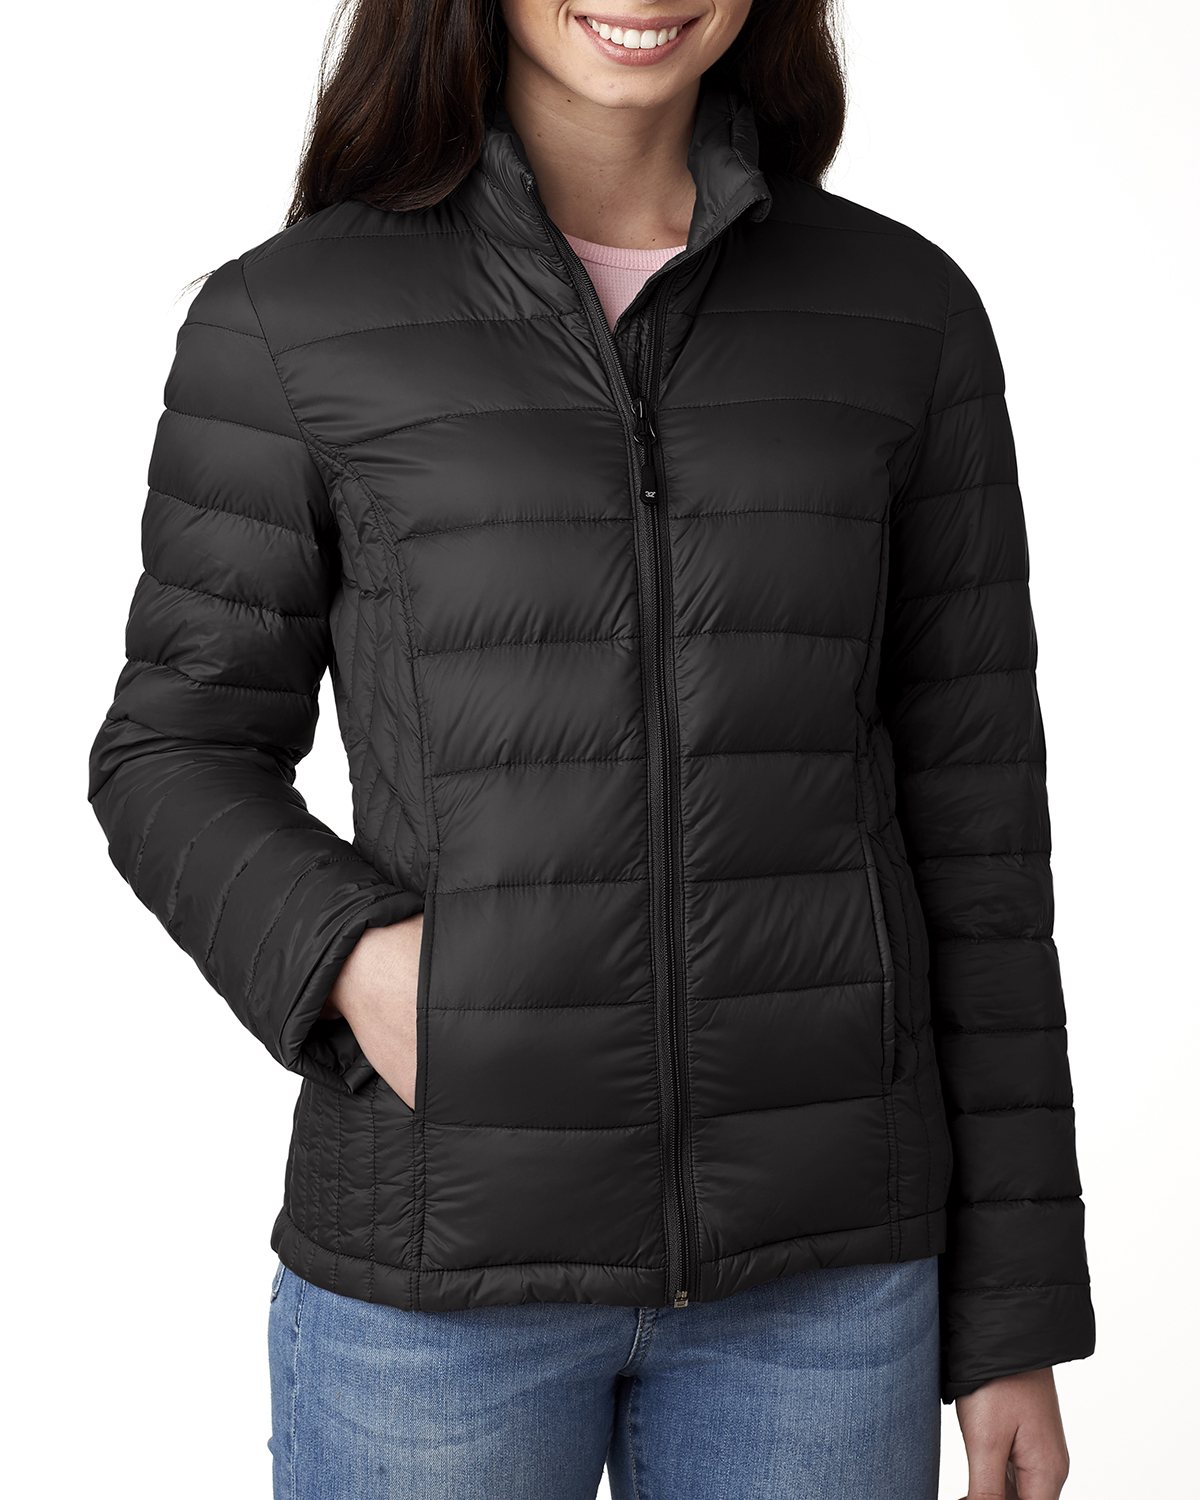 Weatherproof 15600W - Ladies' Packable Down Jacket